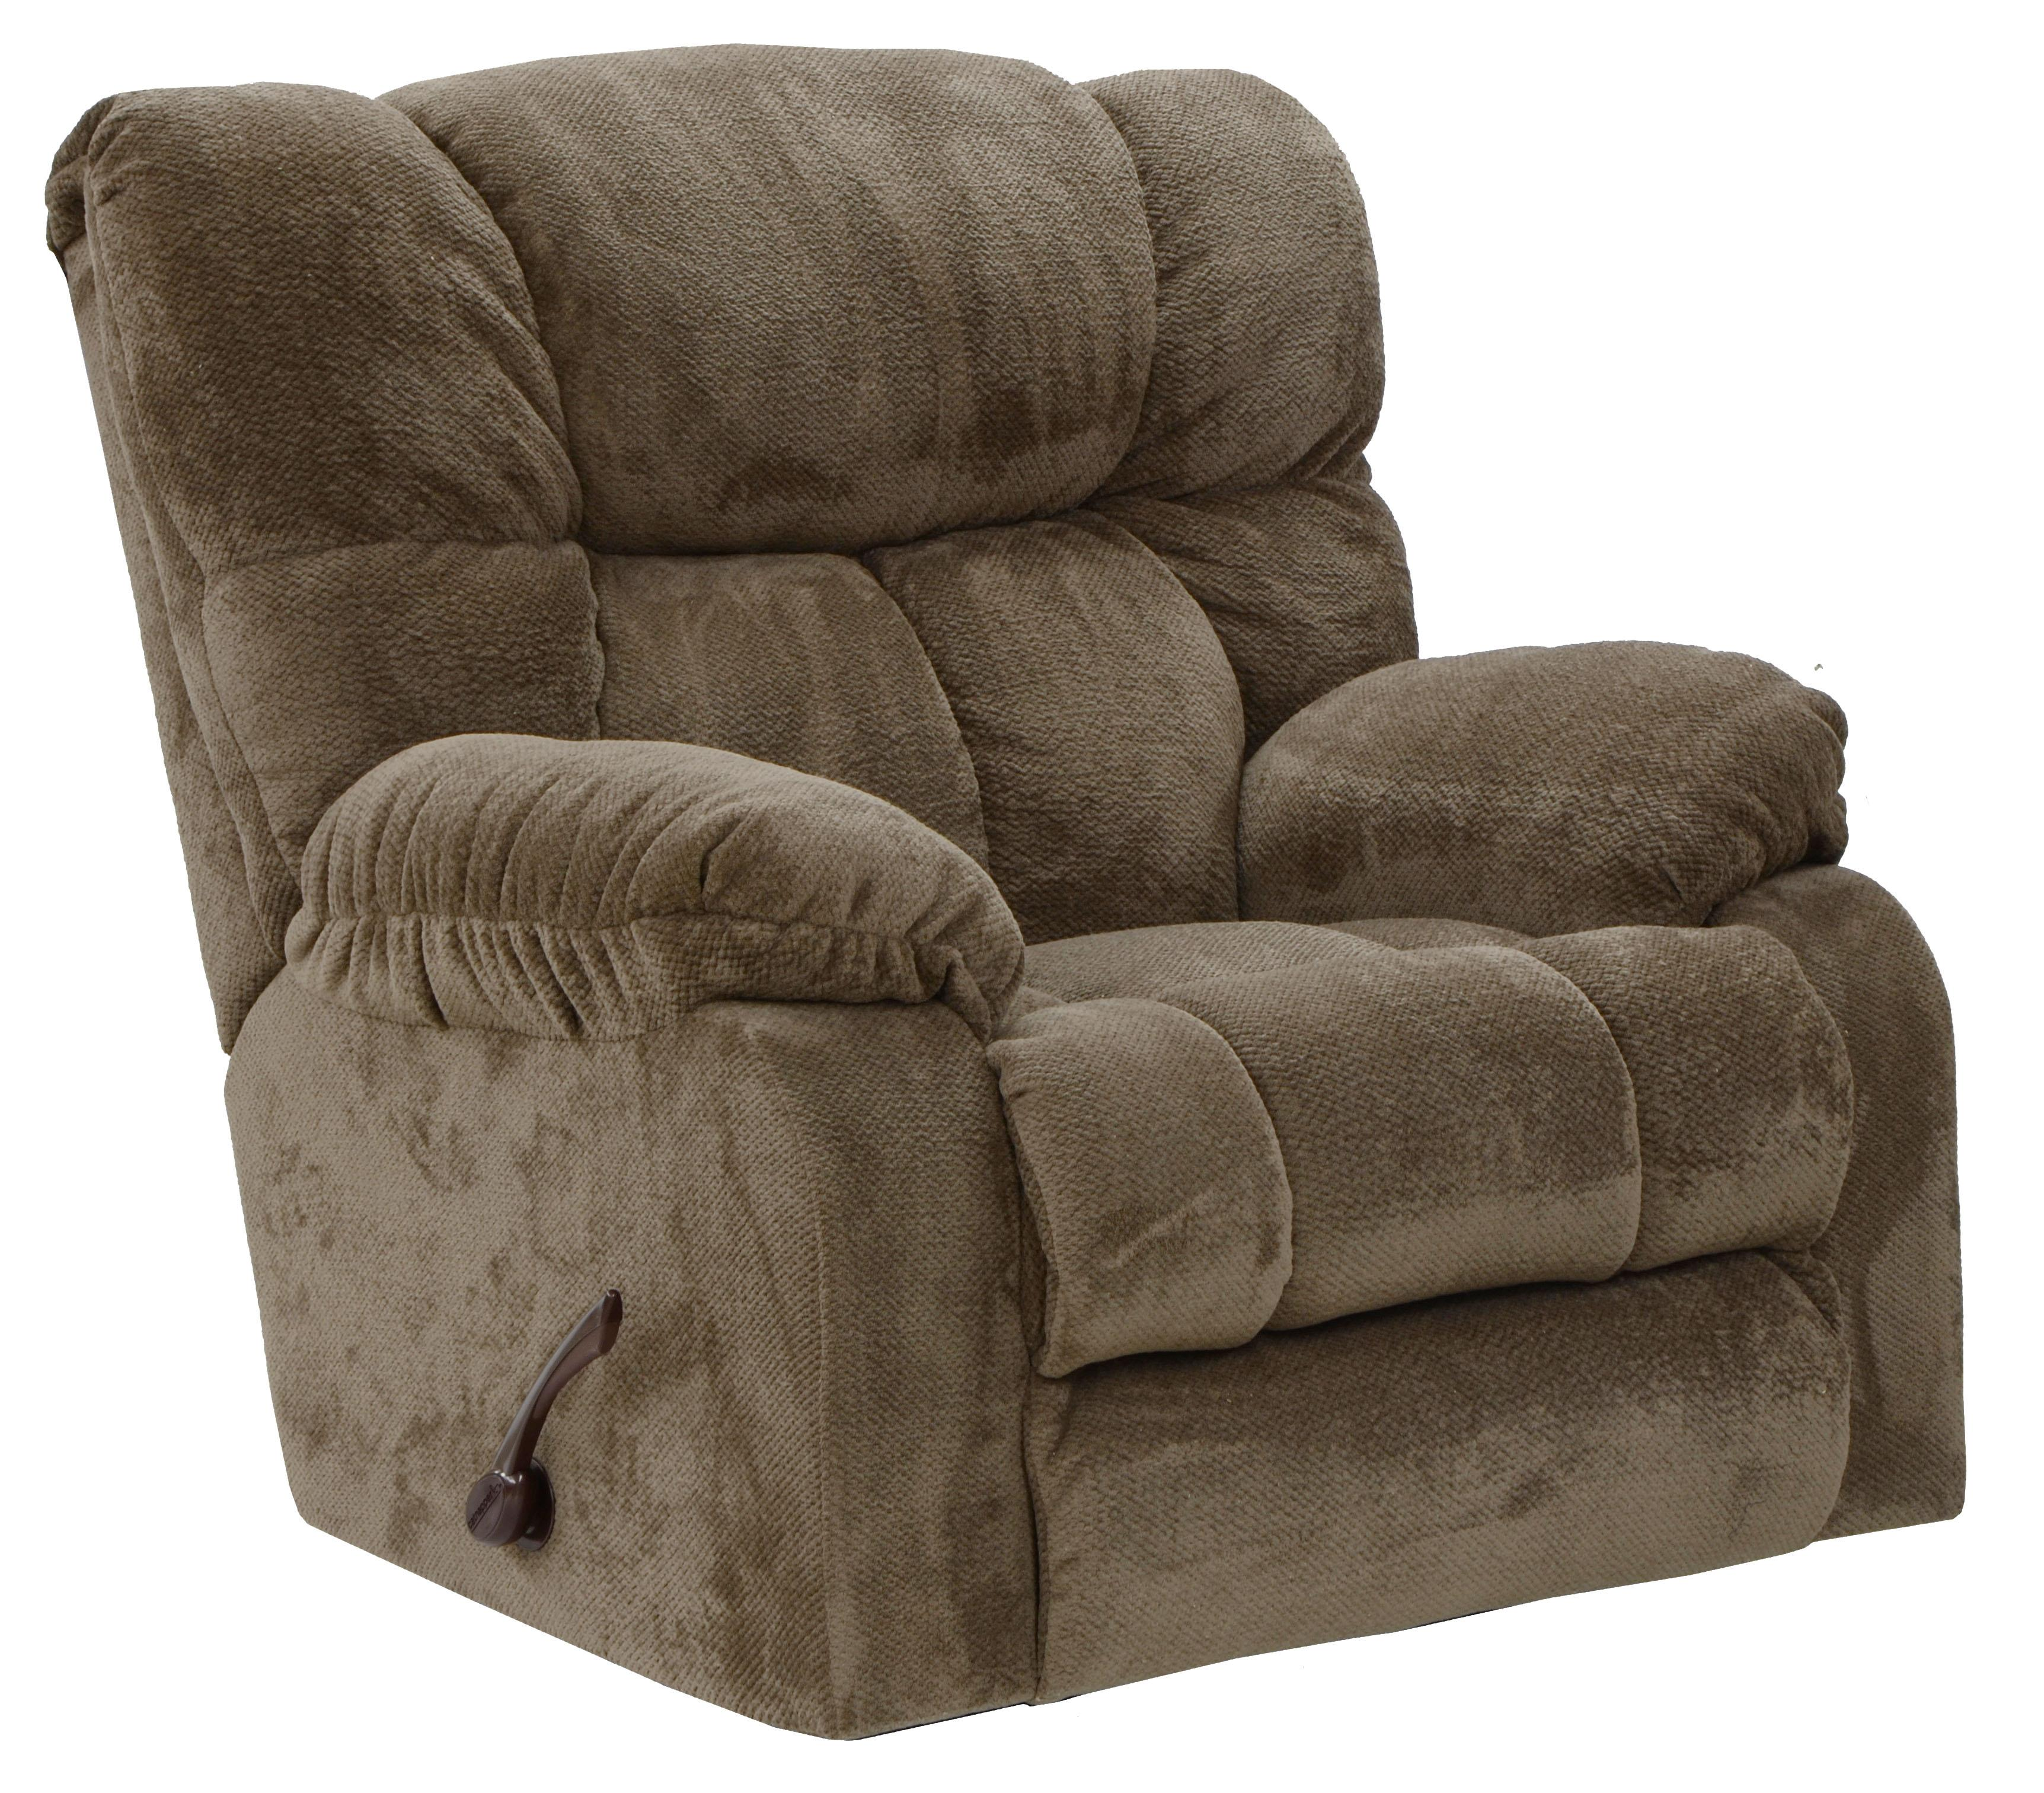 Catnapper motion chairs and recliners 4560 2 popson rocker recliner lapeer furniture Catnapper loveseat recliner